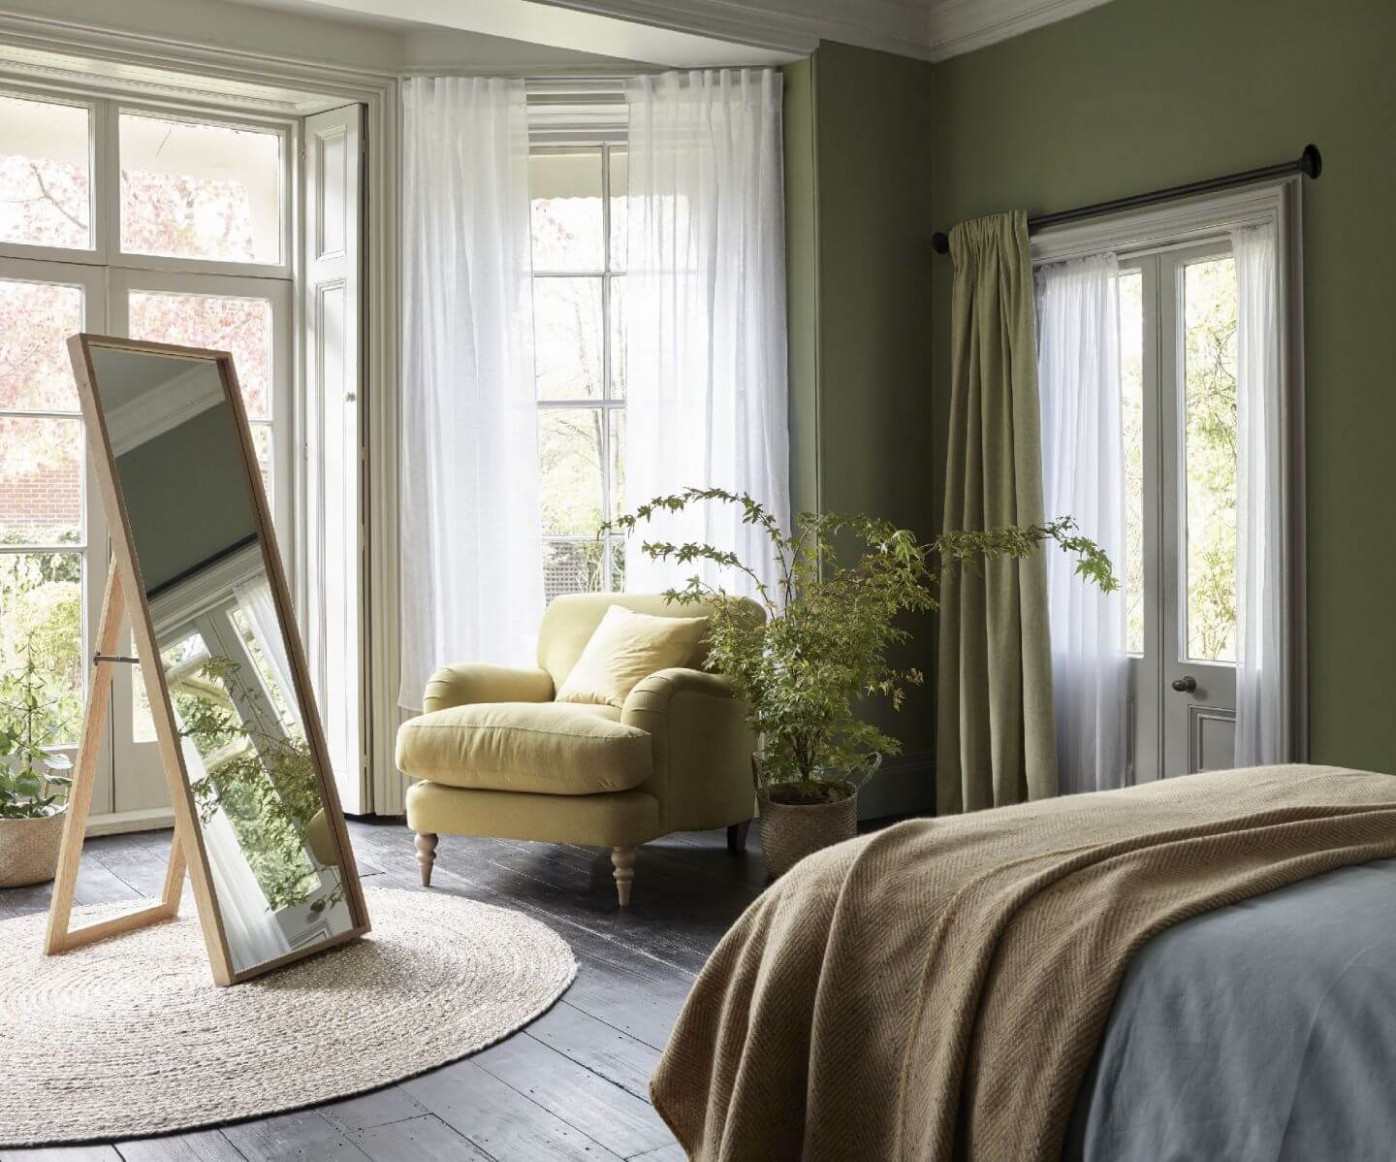 The Best Curtain Ideas for Bedroom Windows - Curtains Up Blog  - Window Ideas For Bedroom